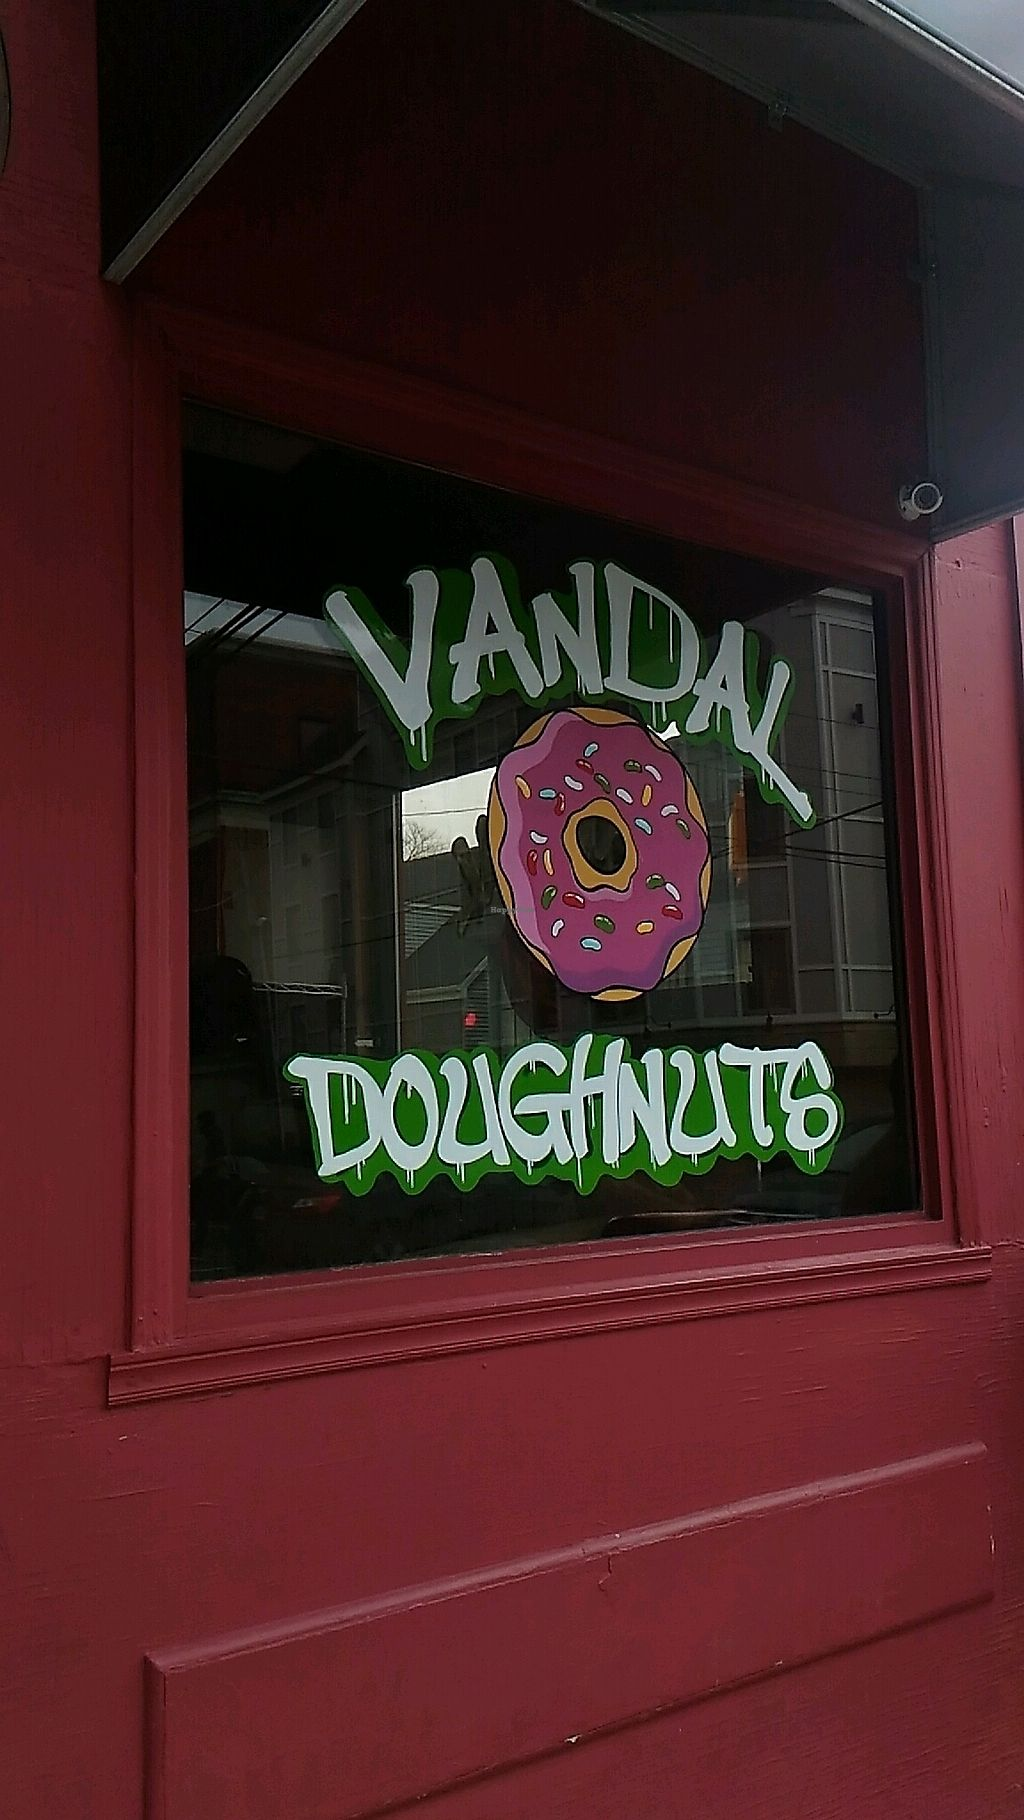 """Photo of Vandal Doughnuts  by <a href=""""/members/profile/QuothTheRaven"""">QuothTheRaven</a> <br/>window  <br/> November 30, 2017  - <a href='/contact/abuse/image/106260/330895'>Report</a>"""